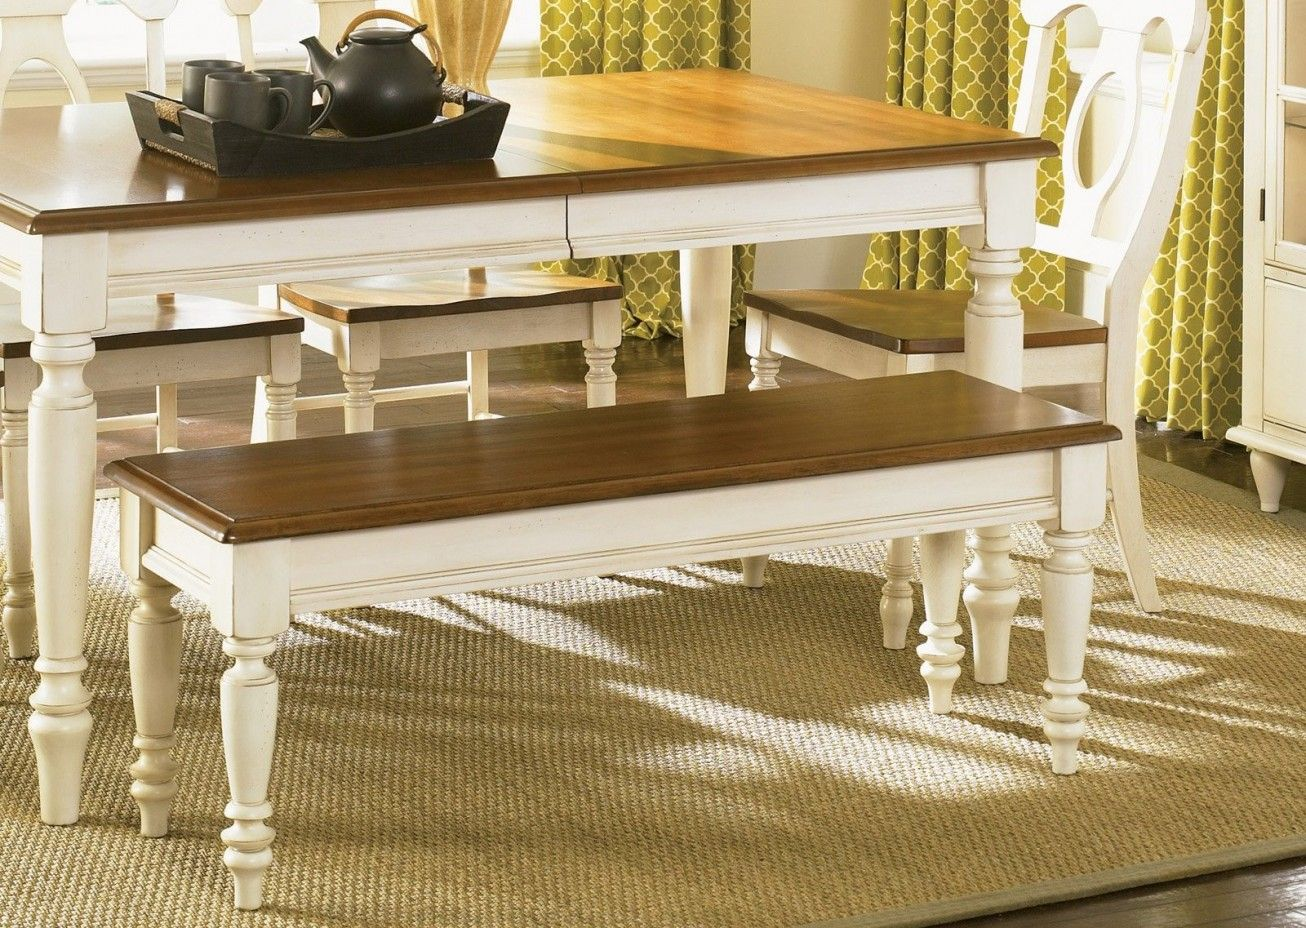 Trendy kitchen table sets with bench design for seating amazing excellent workbench furniture kitchen tables with white country dining sets